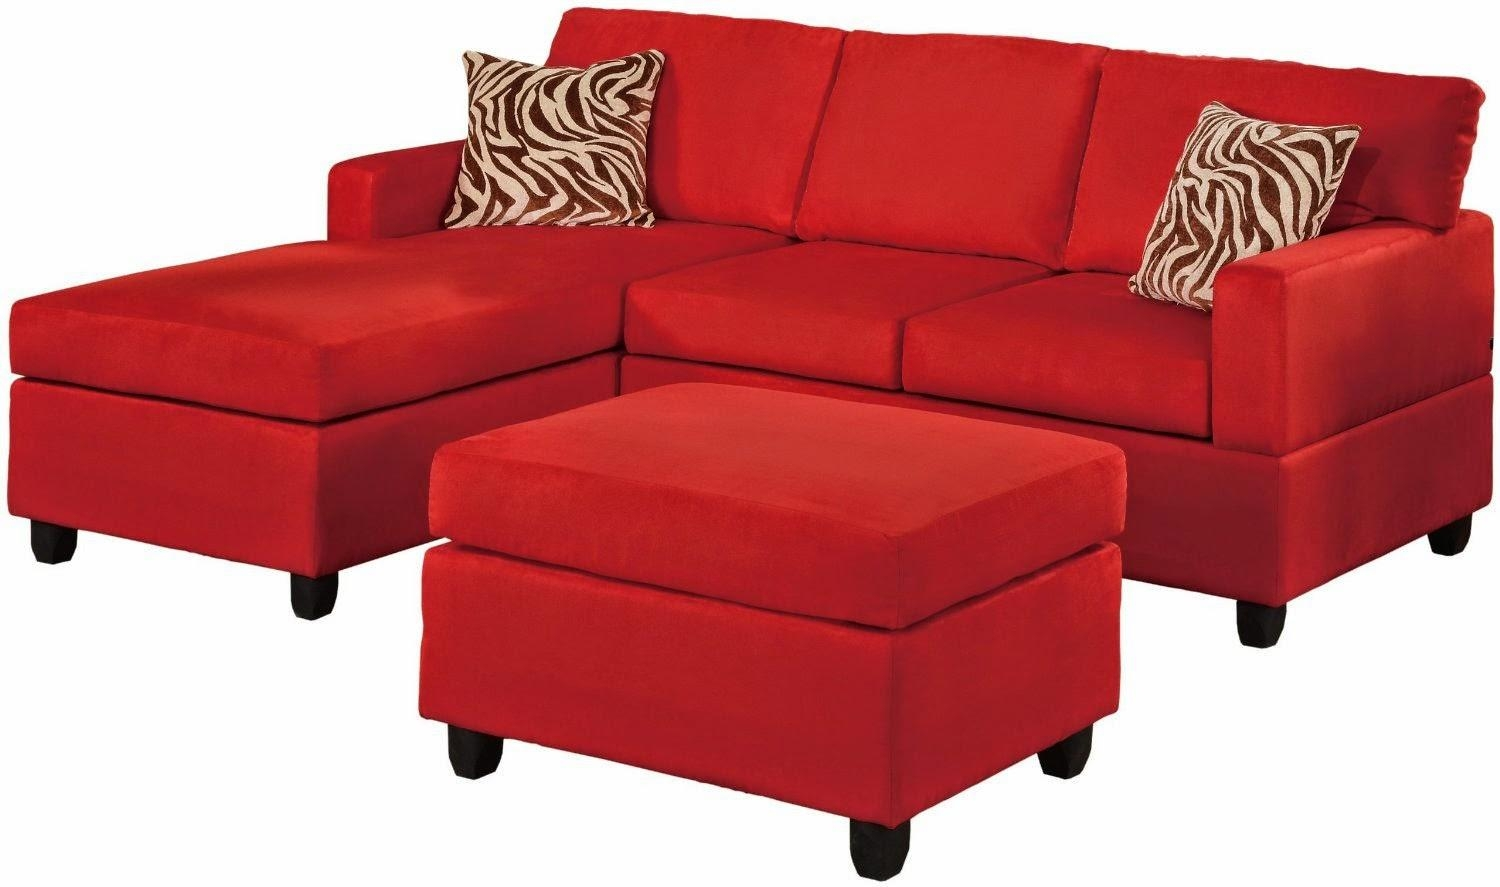 Red Sectional Sofas Cheap | Centerfieldbar Within Red Microfiber Sectional Sofas (View 20 of 21)